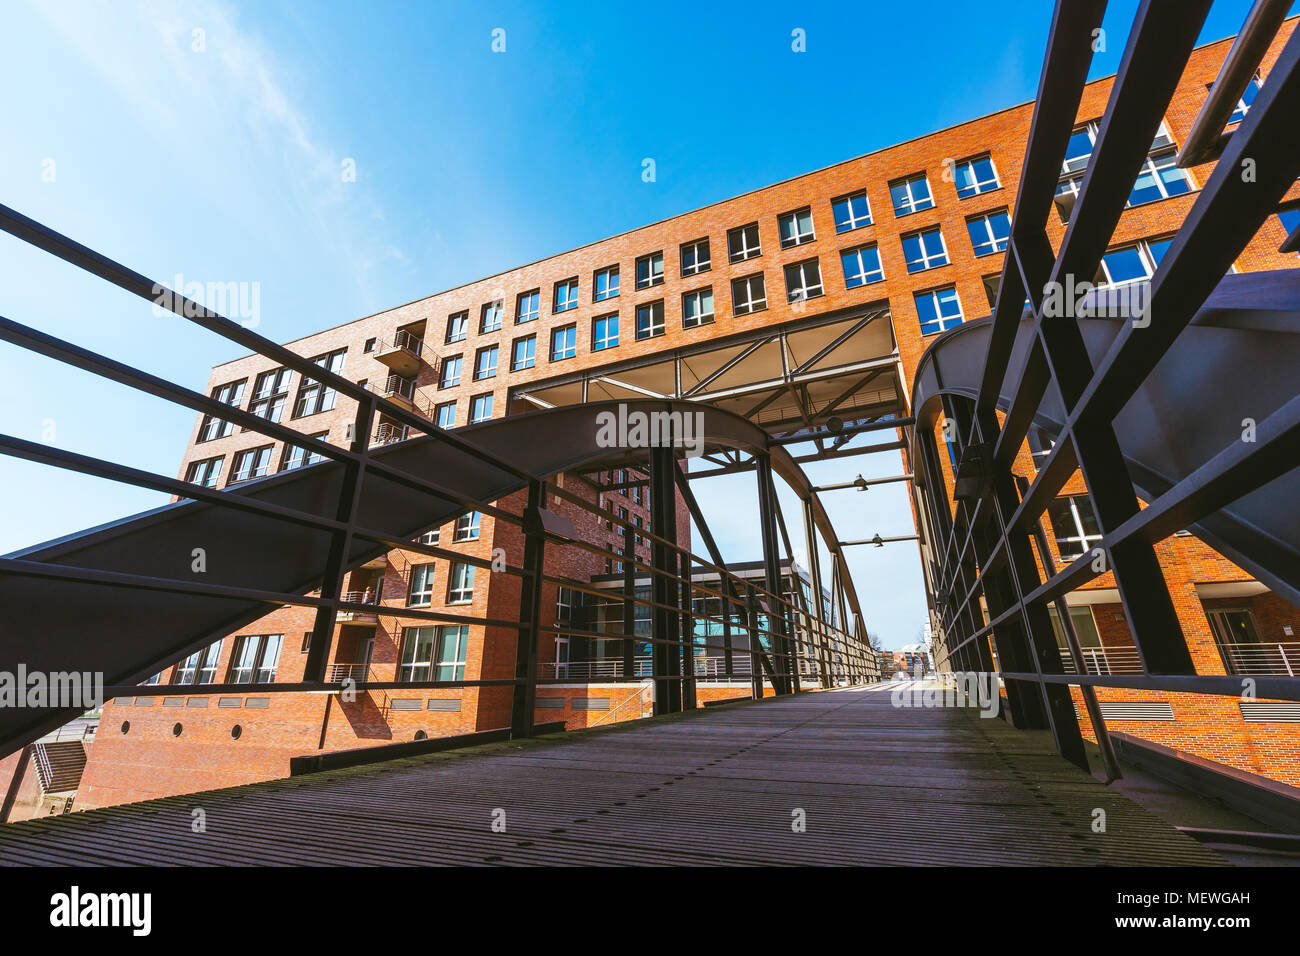 Famous landmark old Speicherstadt in Hamburg, build with red bricks. Bridge in low angle view. - Stock Image